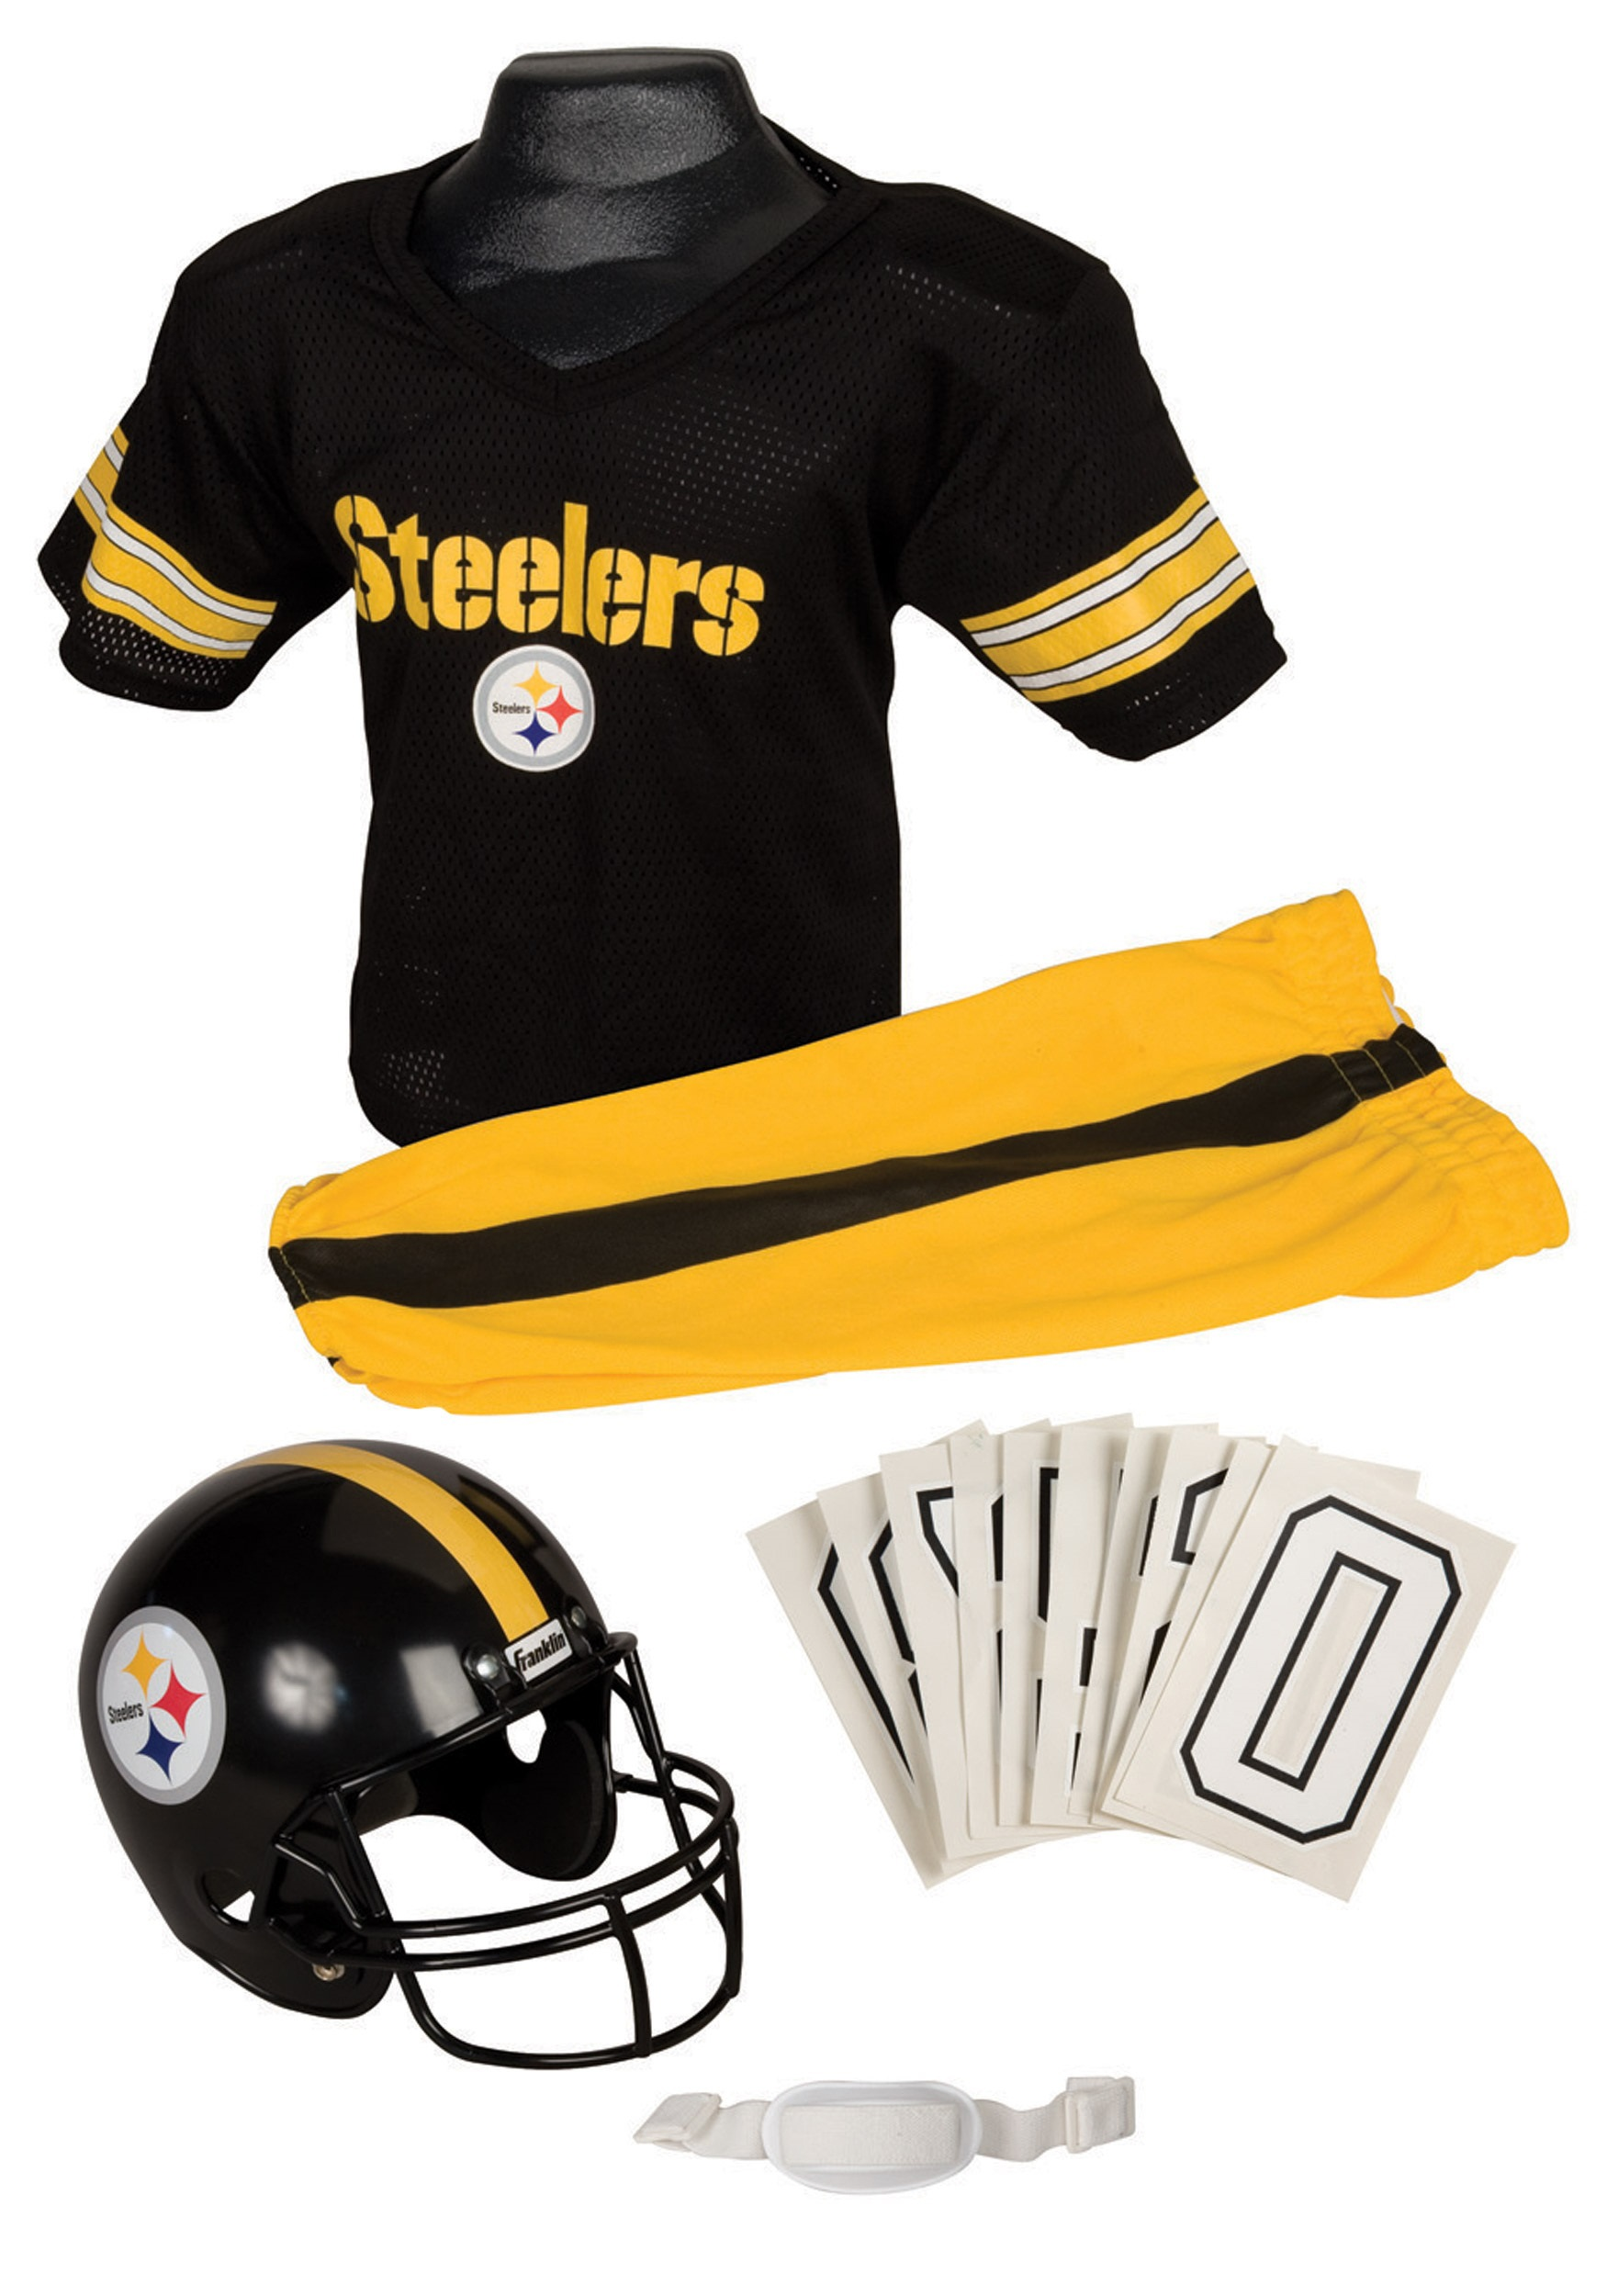 1750x2500 Nfl Steelers Uniform Costume